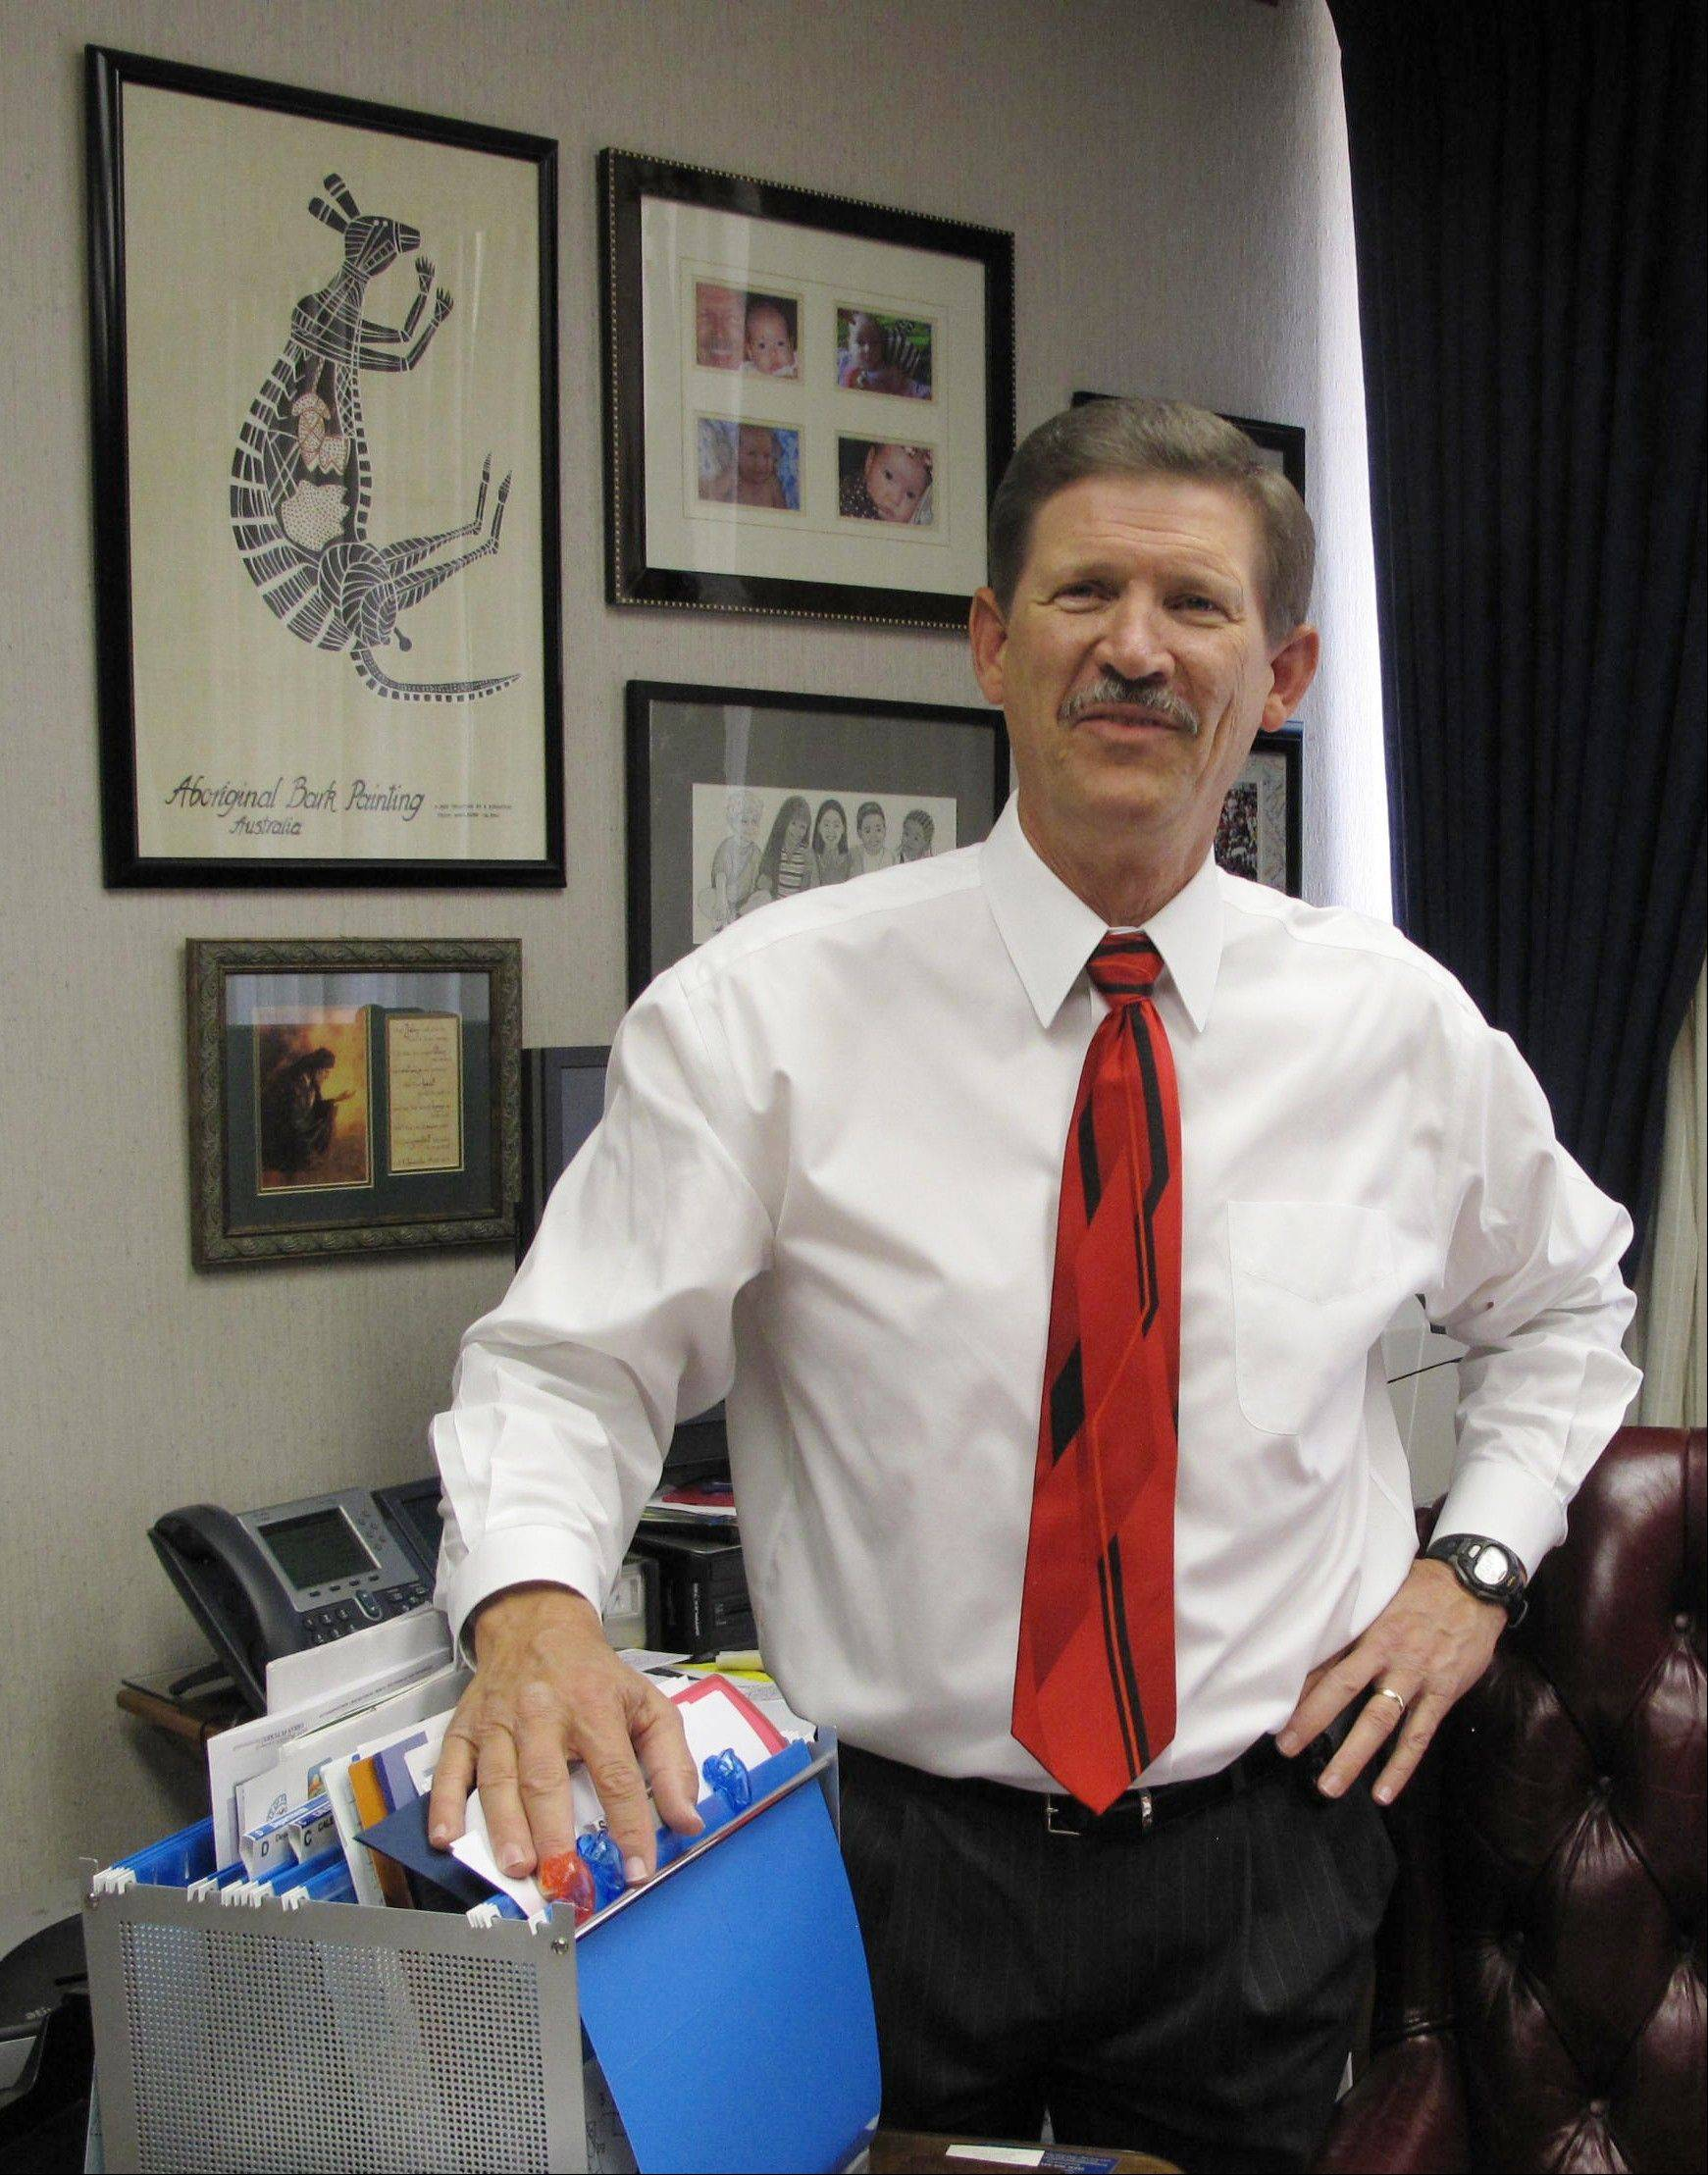 Fresno County School Superintendent Larry Powell is forgoing $800,000 in compensation over the next three years of his term. Until his term expires in 2015, Powell will run 325 schools and 35 school districts with 195,000 students, all for less than a starting California teacher earns. As he prepares for retirement, he wants to ensure that his pet projects survive California budget cuts.